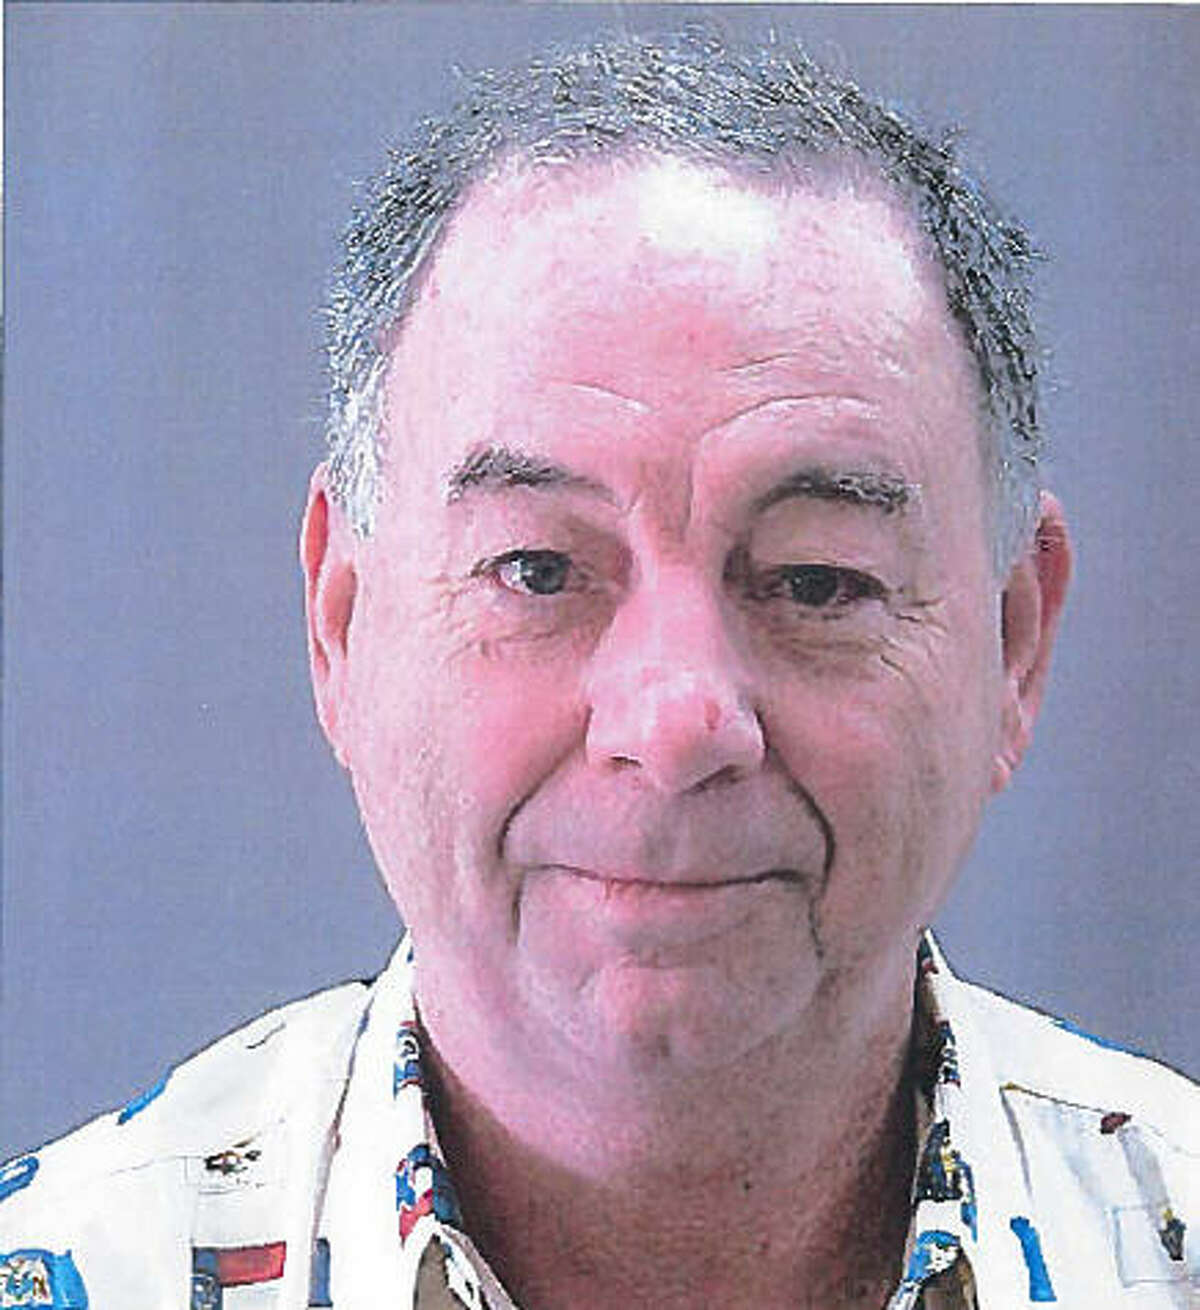 Police identified William Kenny, 64, as the man who shot and killed Chief Deputy Constable Clint Greenwood in Baytown on April 3, 2017. Investigators say Kenny took his own life near Ben Taub hospital the next day using the same gun involved in the Greenwood shooting.